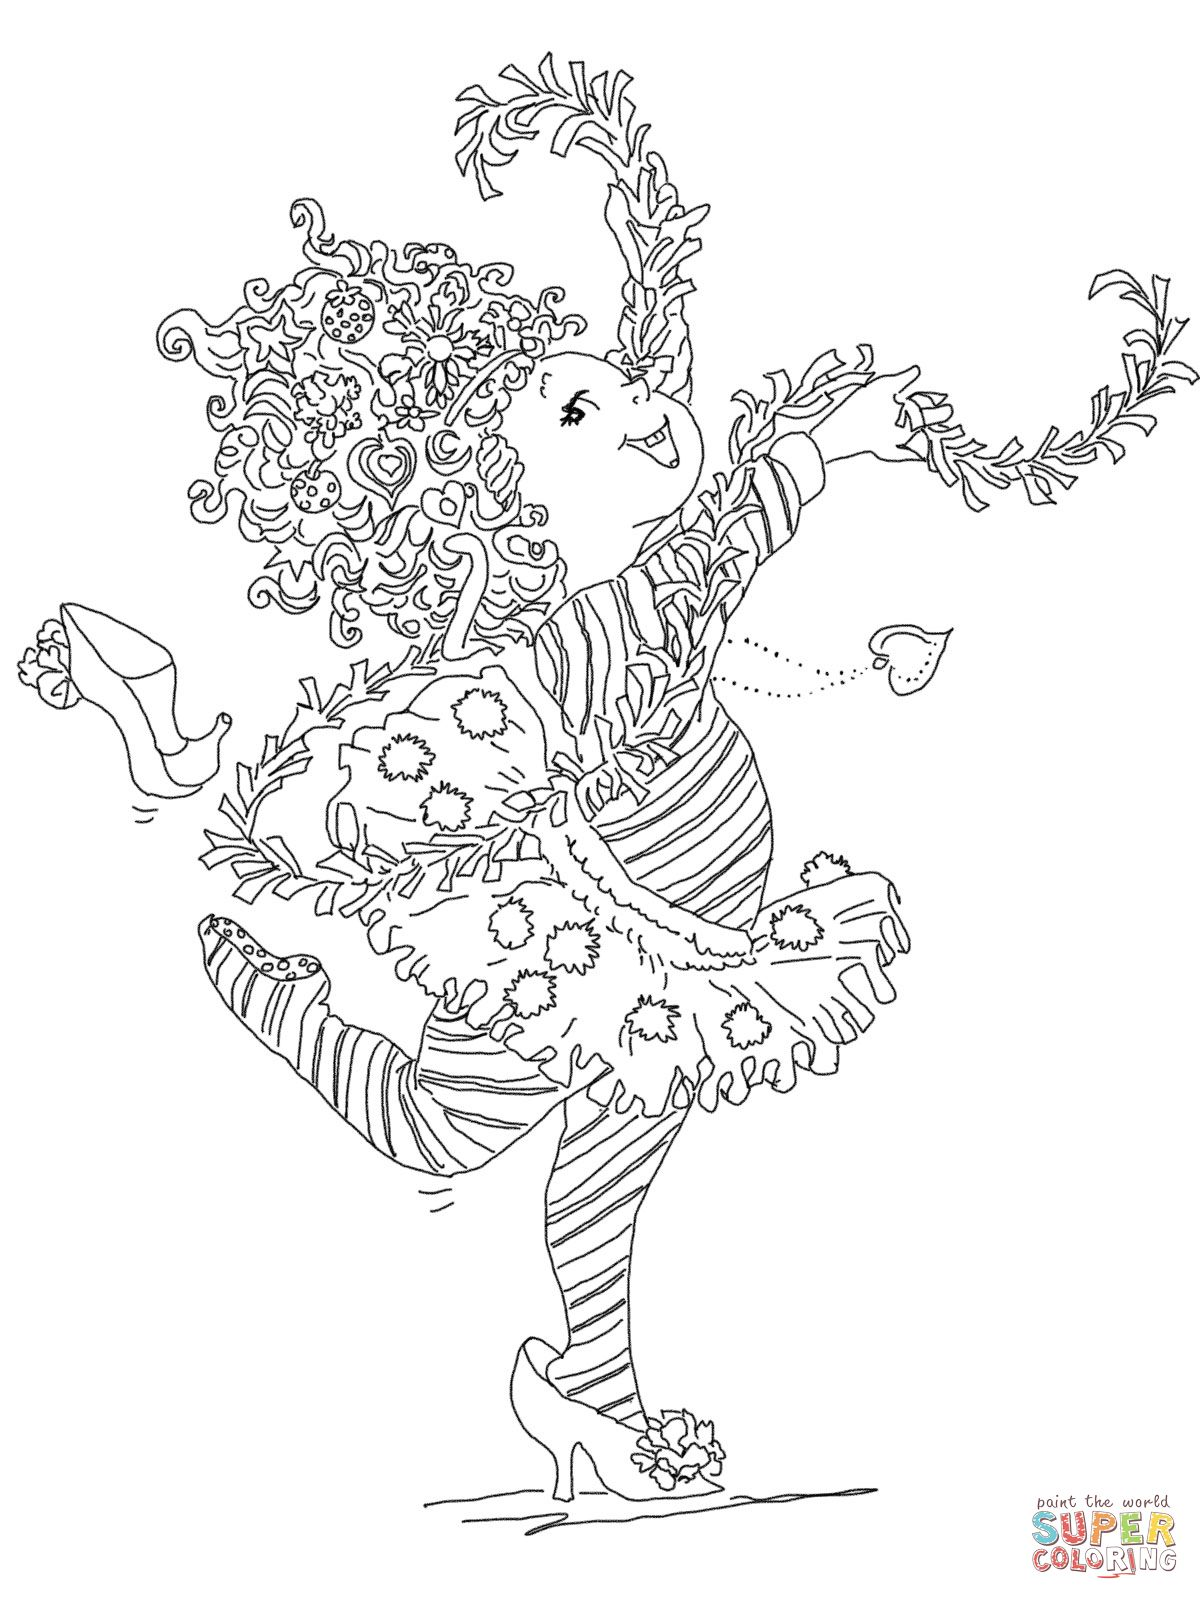 Fancy Nancy Super Coloring Colouring Book Pages Pinterest